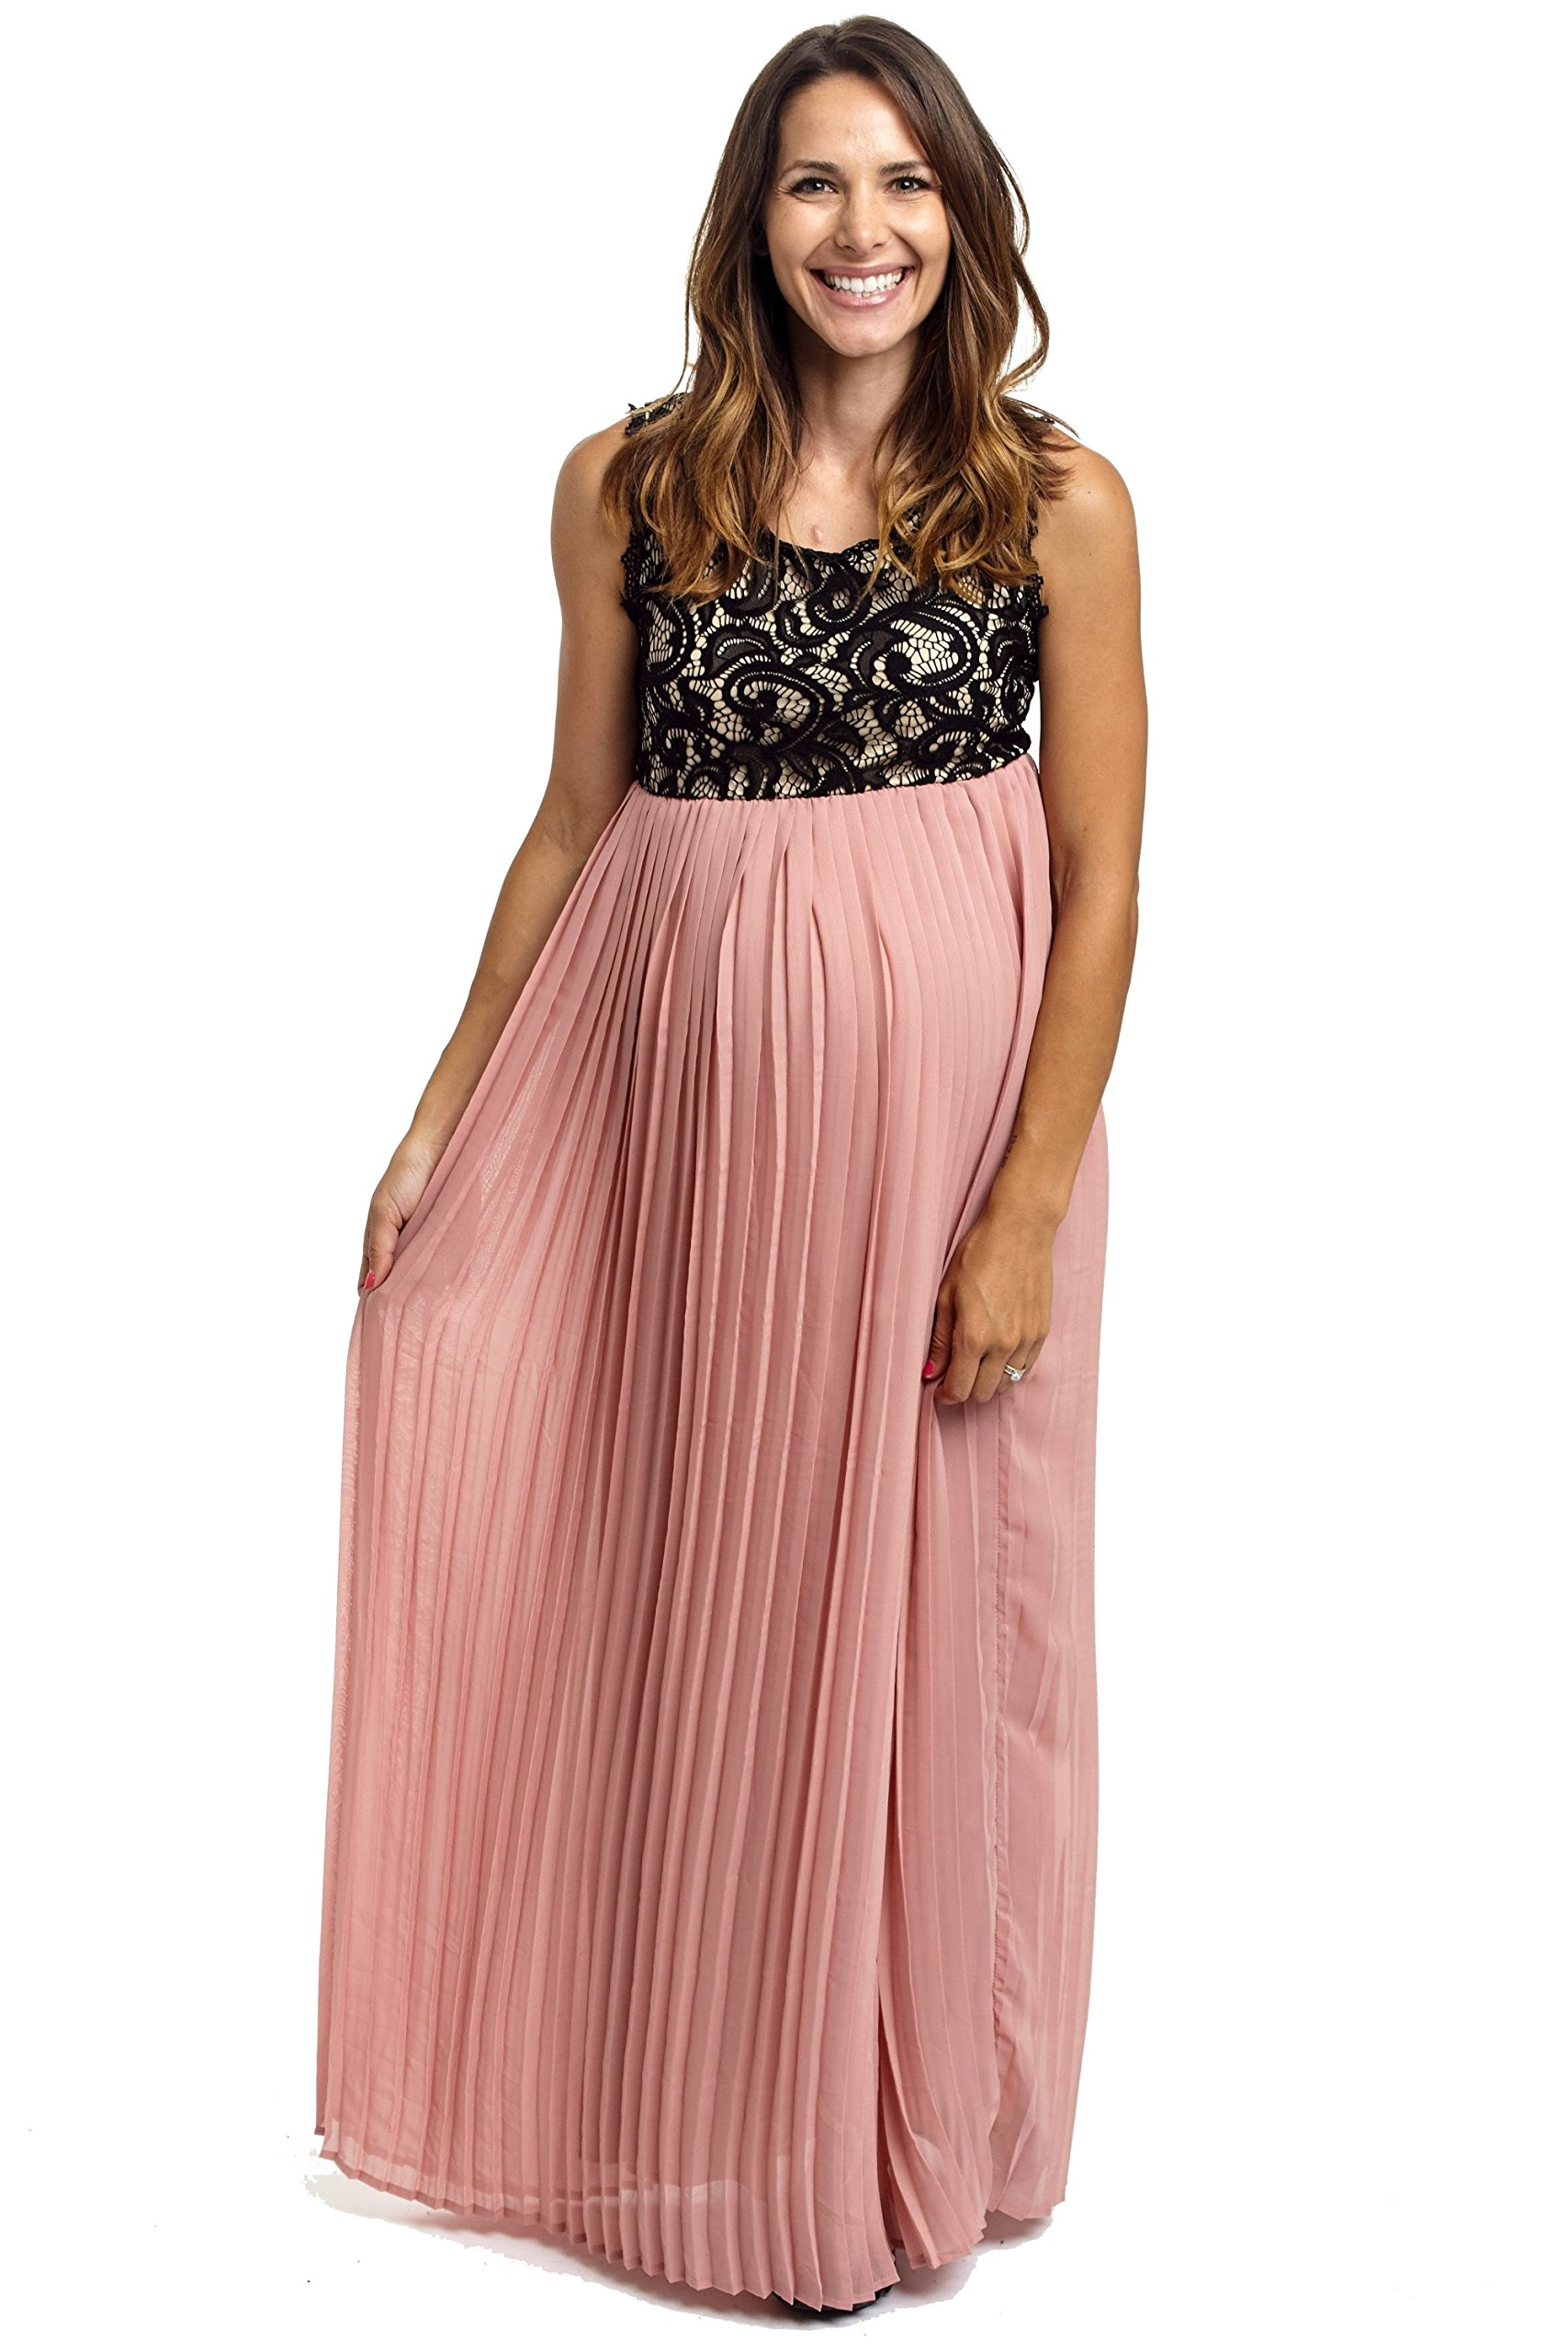 PinkBlush Maternity Pale Pink Pleated Chiffon Lace Top Maternity Maxi Dress, La